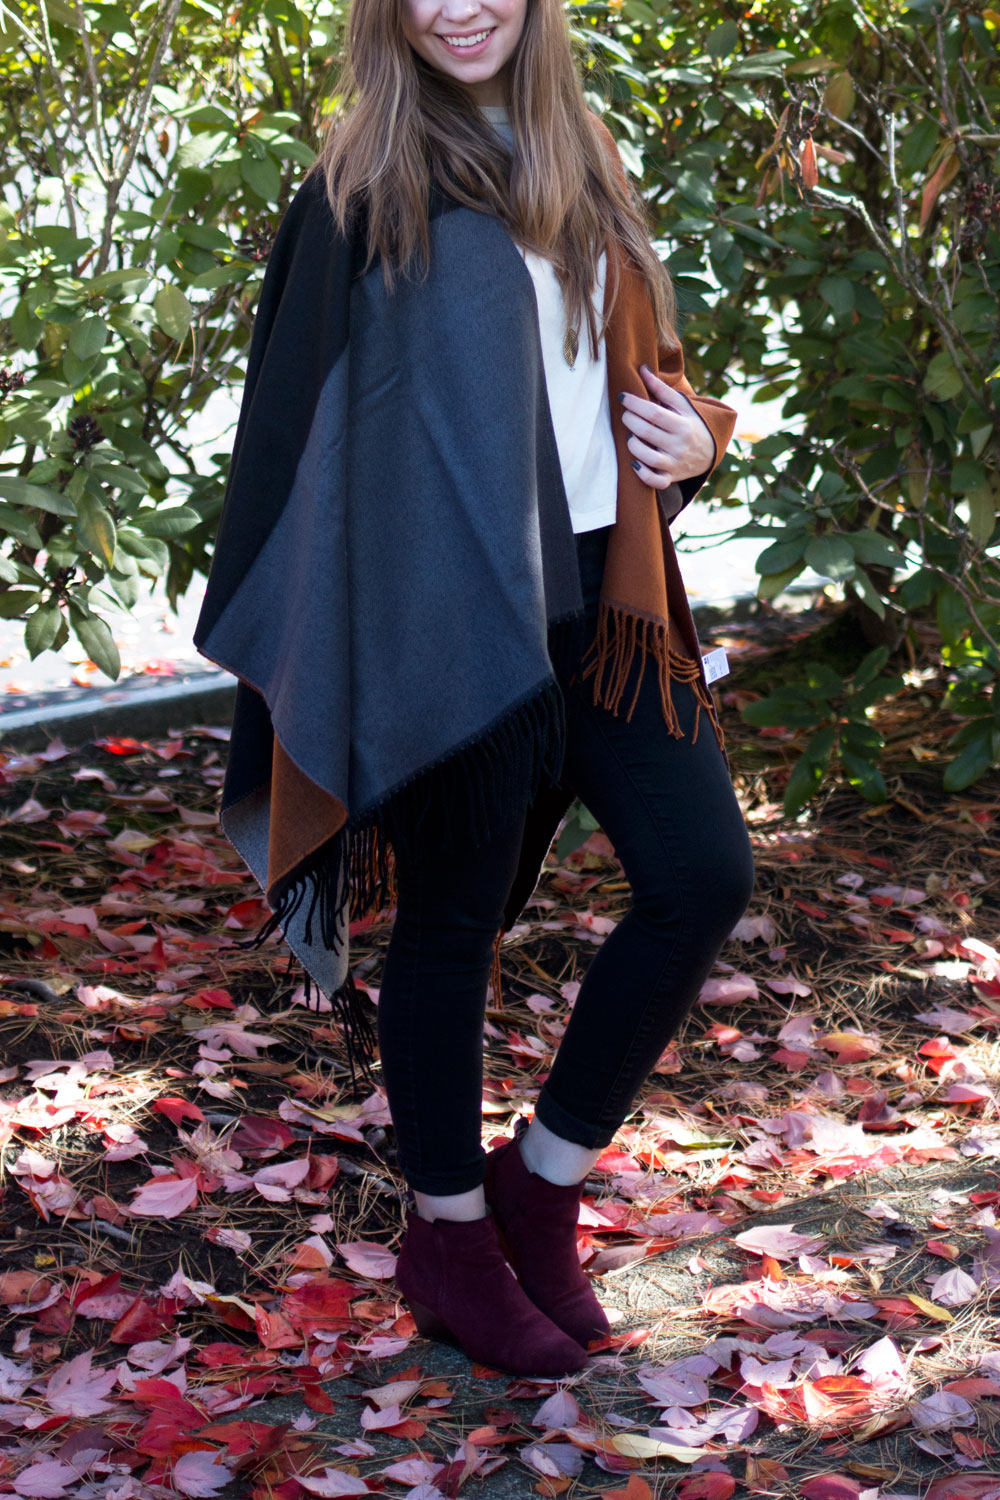 b257d97525ce8 Styling a Poncho for Fall // hellorigby seattle fashion blog